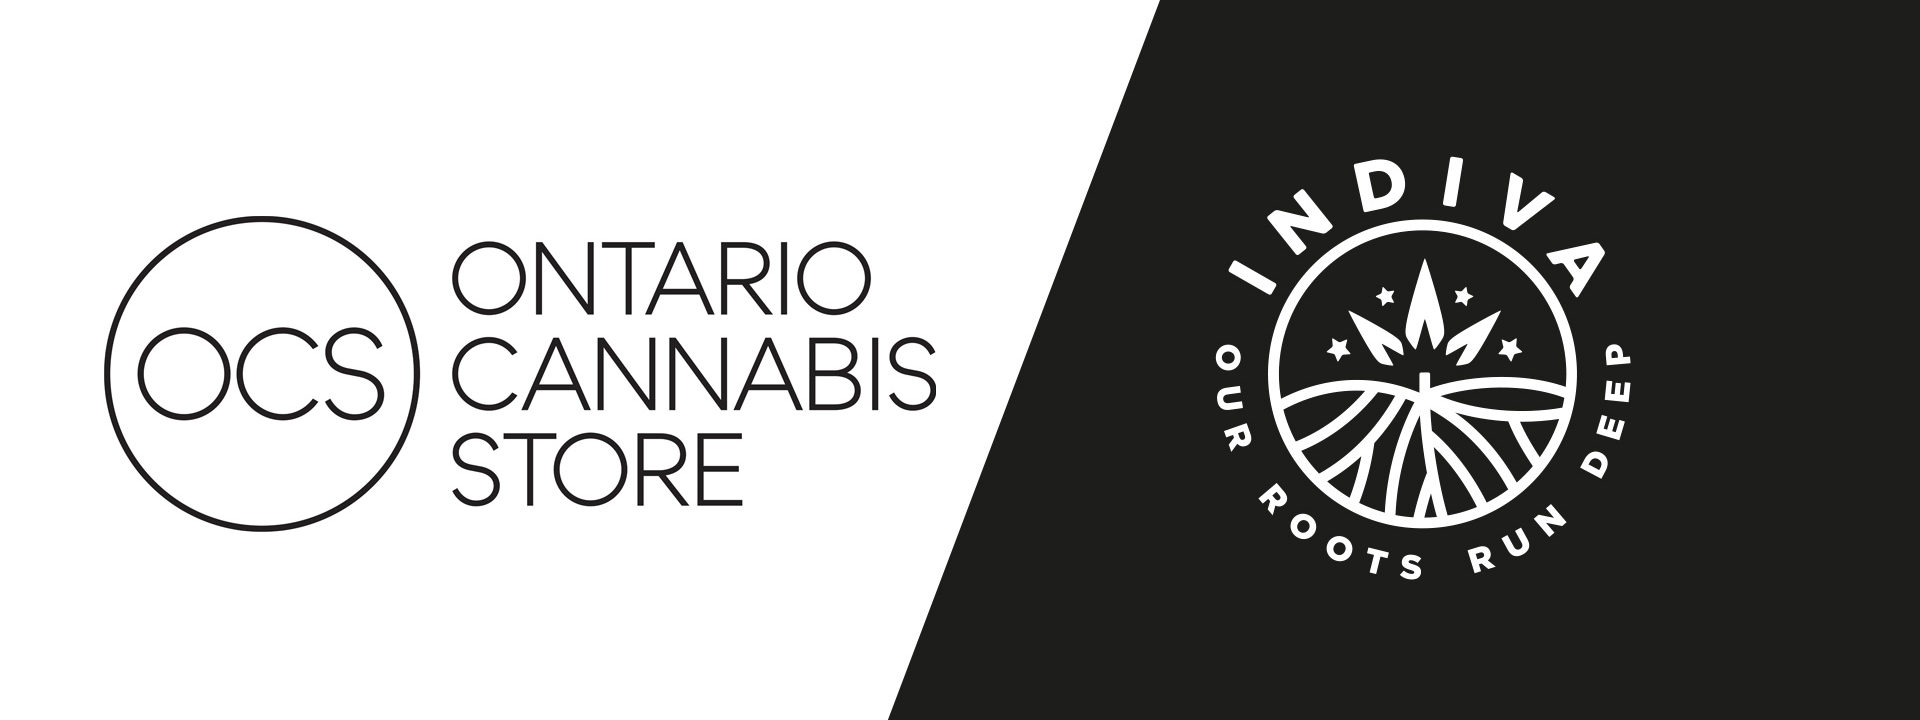 Press Release – INDIVA announces initial supply agreement with the Ontario Cannabis Store